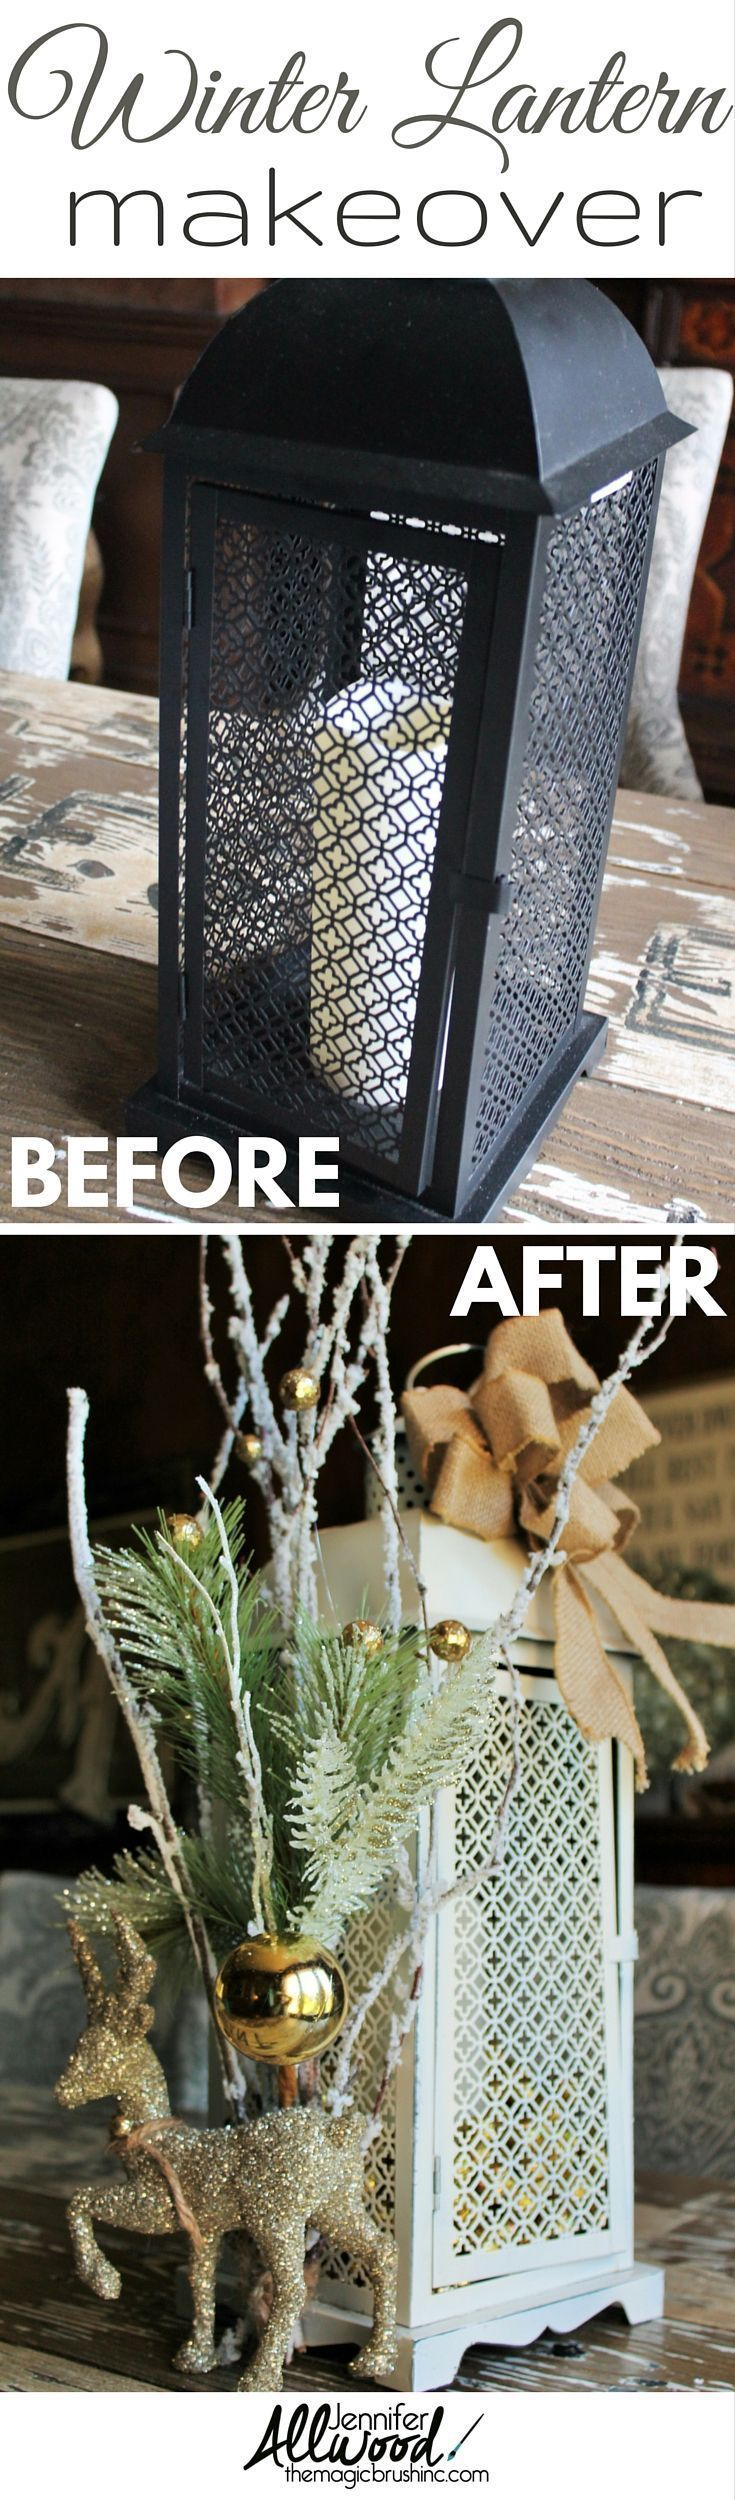 Ideas : Find a Christmas lantern on clearance and decorate it for winter! Lantern decorating is a fun way to take something that is cute and make it gorgeous!!! More painting tips and DIY projects at theMagicBrushinc.com